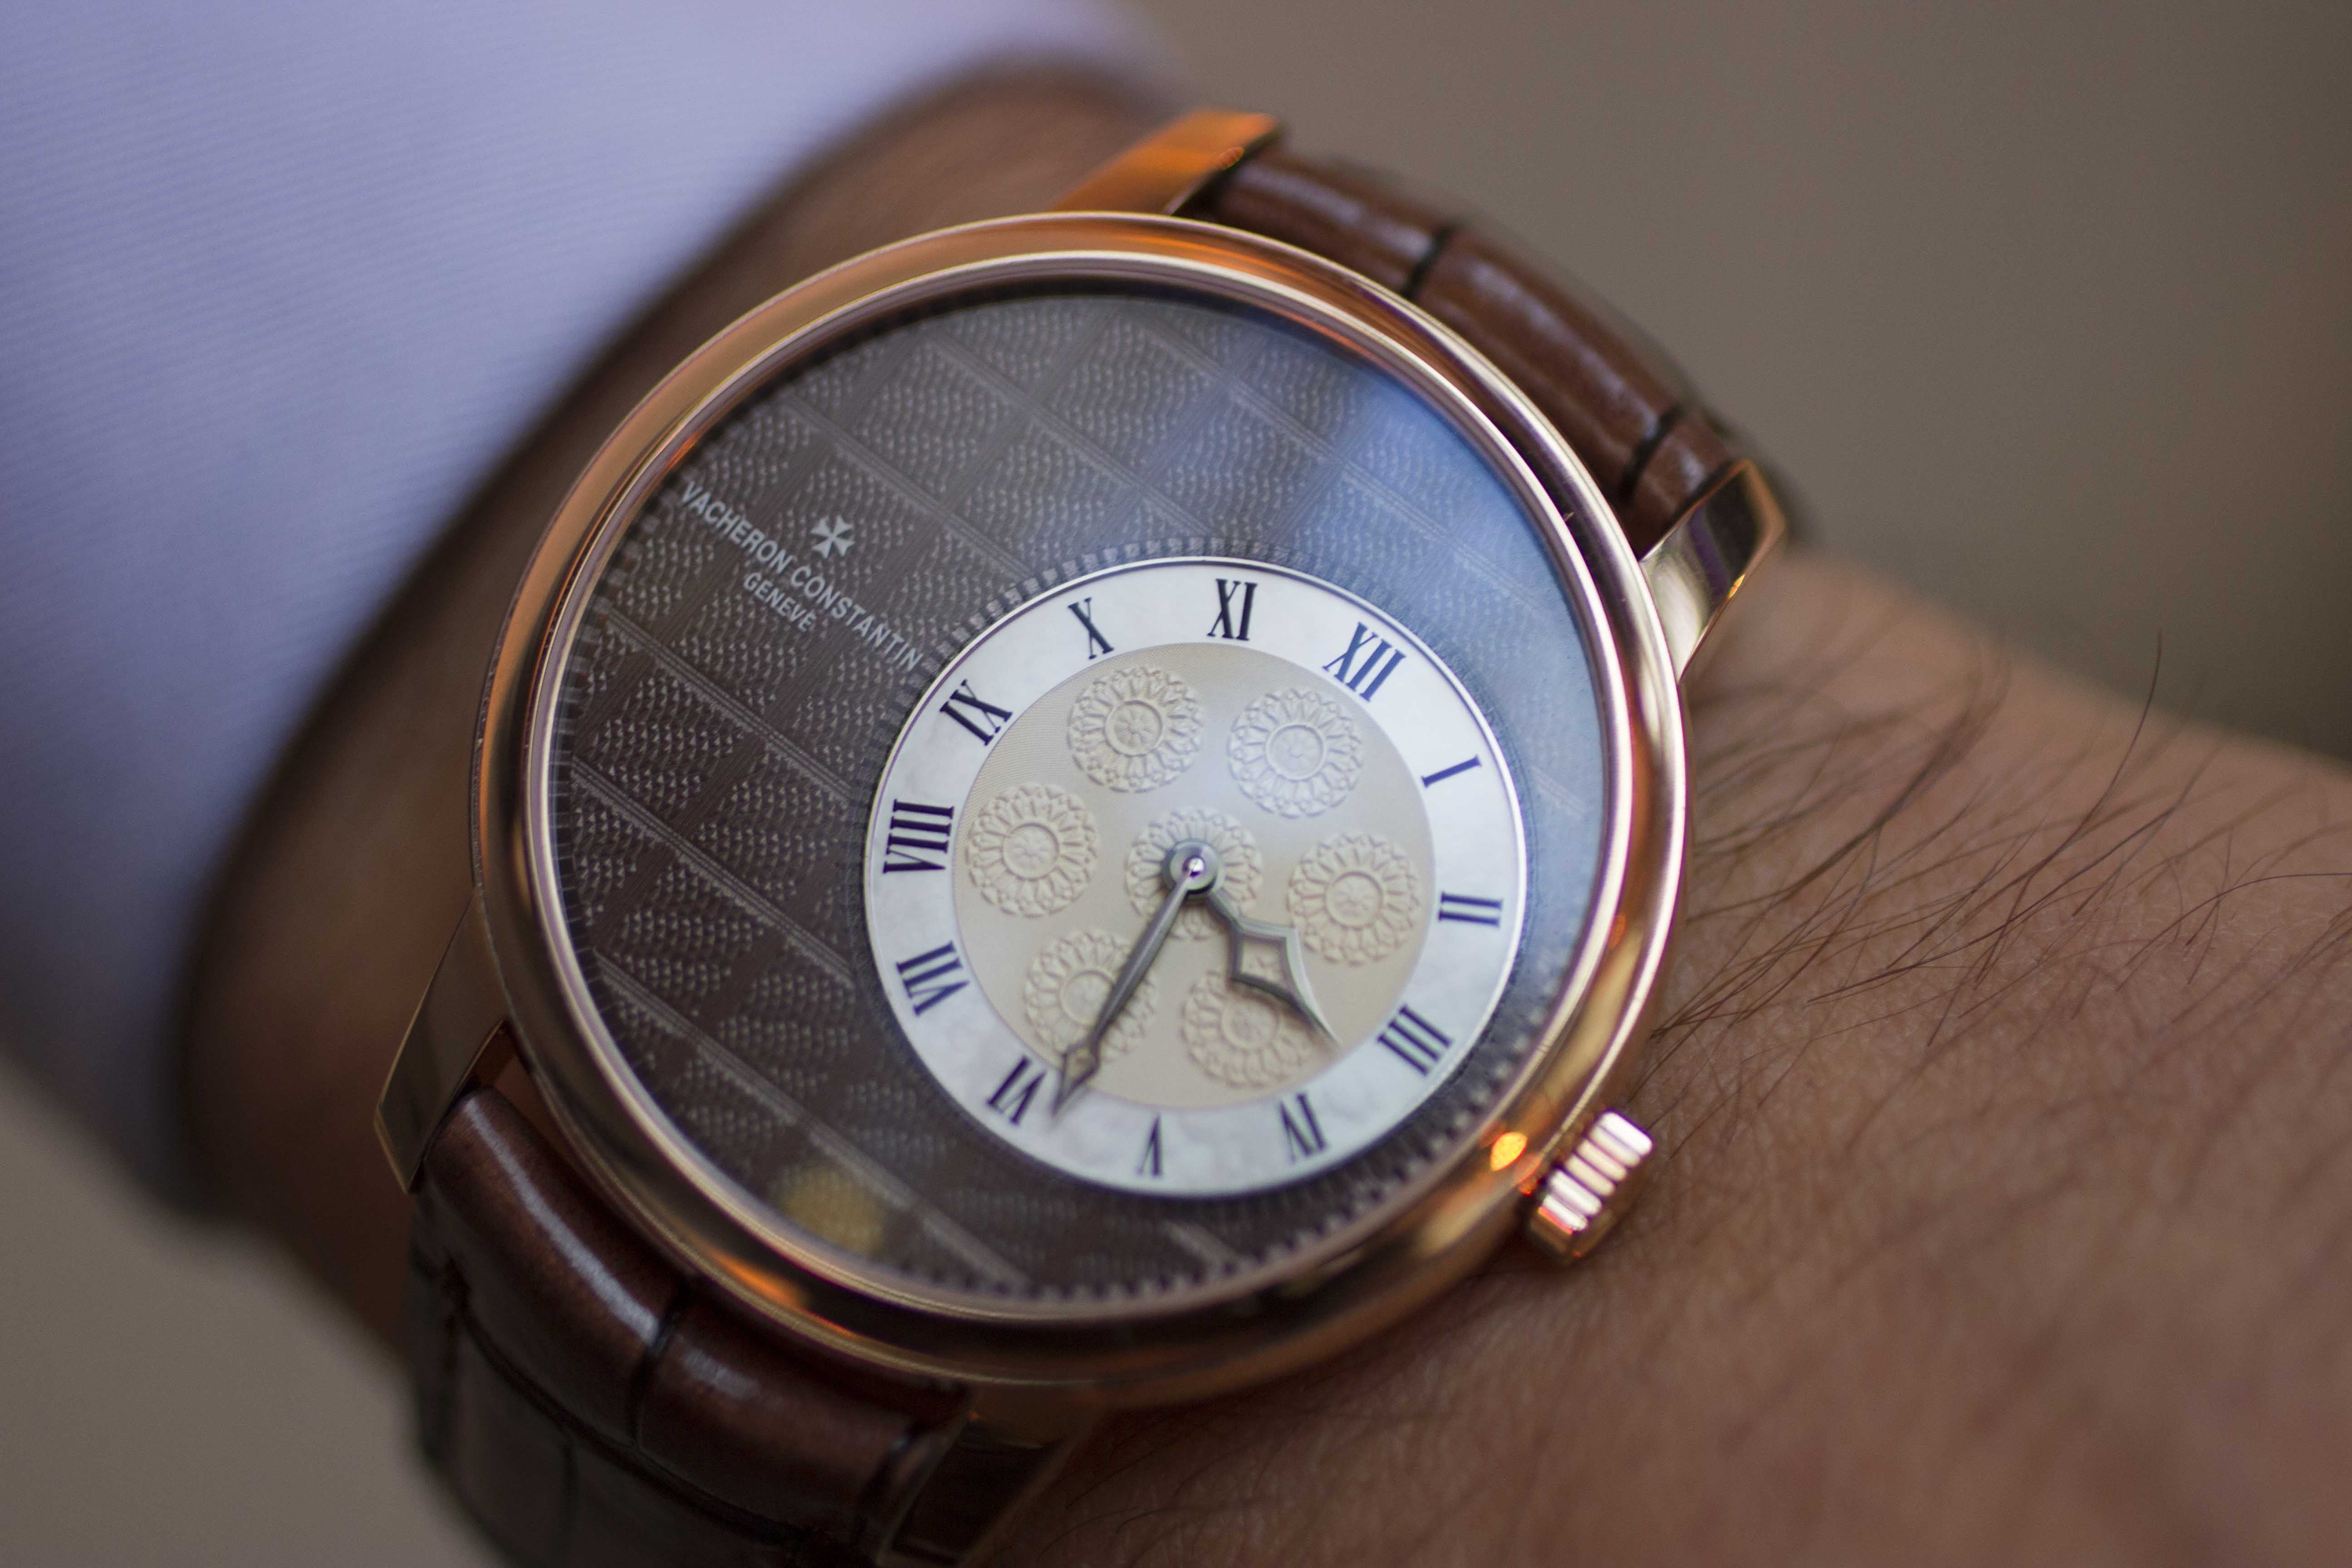 Vacheron Constantin Métiers d'Art Elégance Sartoriale windowpane  Introducing: The Vacheron Constantin Métiers d'Art Elégance Sartoriale, A Collection Dedicated To Matters Of Style (Live Pics, Pricing Information) Introducing: The Vacheron Constantin Métiers d'Art Elégance Sartoriale, A Collection Dedicated To Matters Of Style (Live Pics, Pricing Information) 7 windowpane pattern